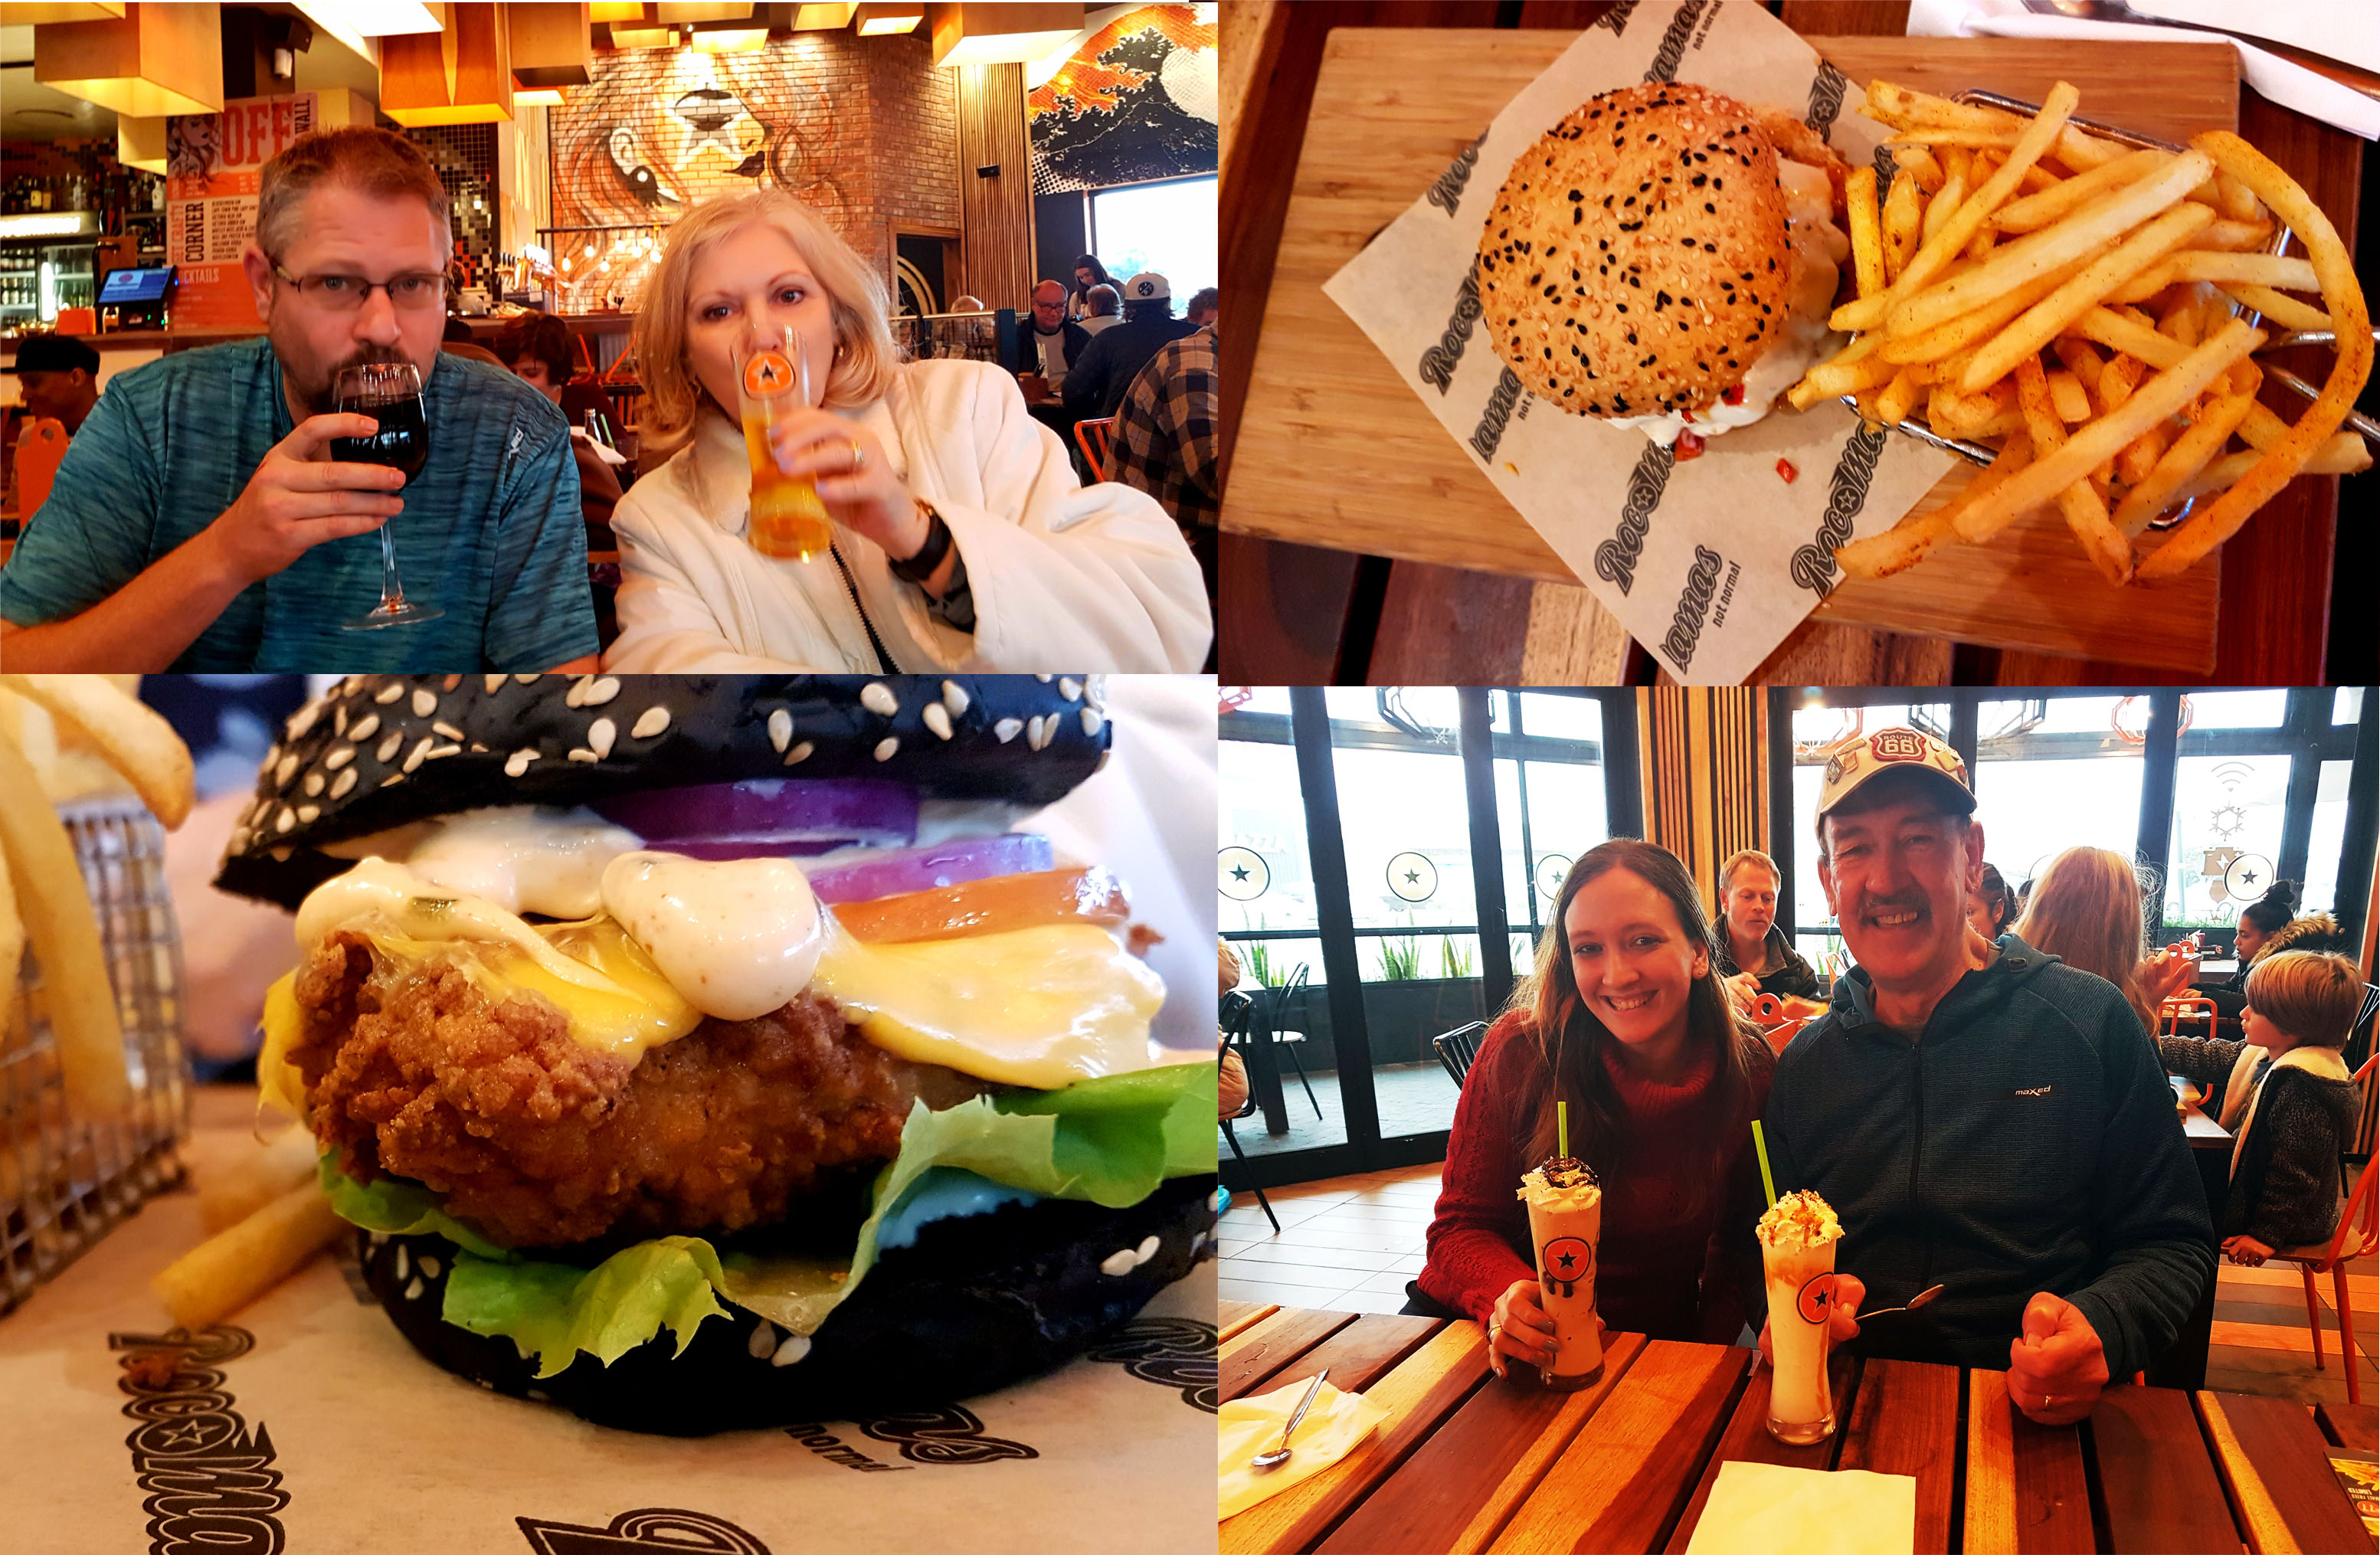 Husband took a break that afternoon so we all headed off to Rocomama's together for a few fast favourites. See me and Dad with our shakes, Husband and Mum with their wine and beer, and Mum's impressive black-bunned burger. Very tasty.